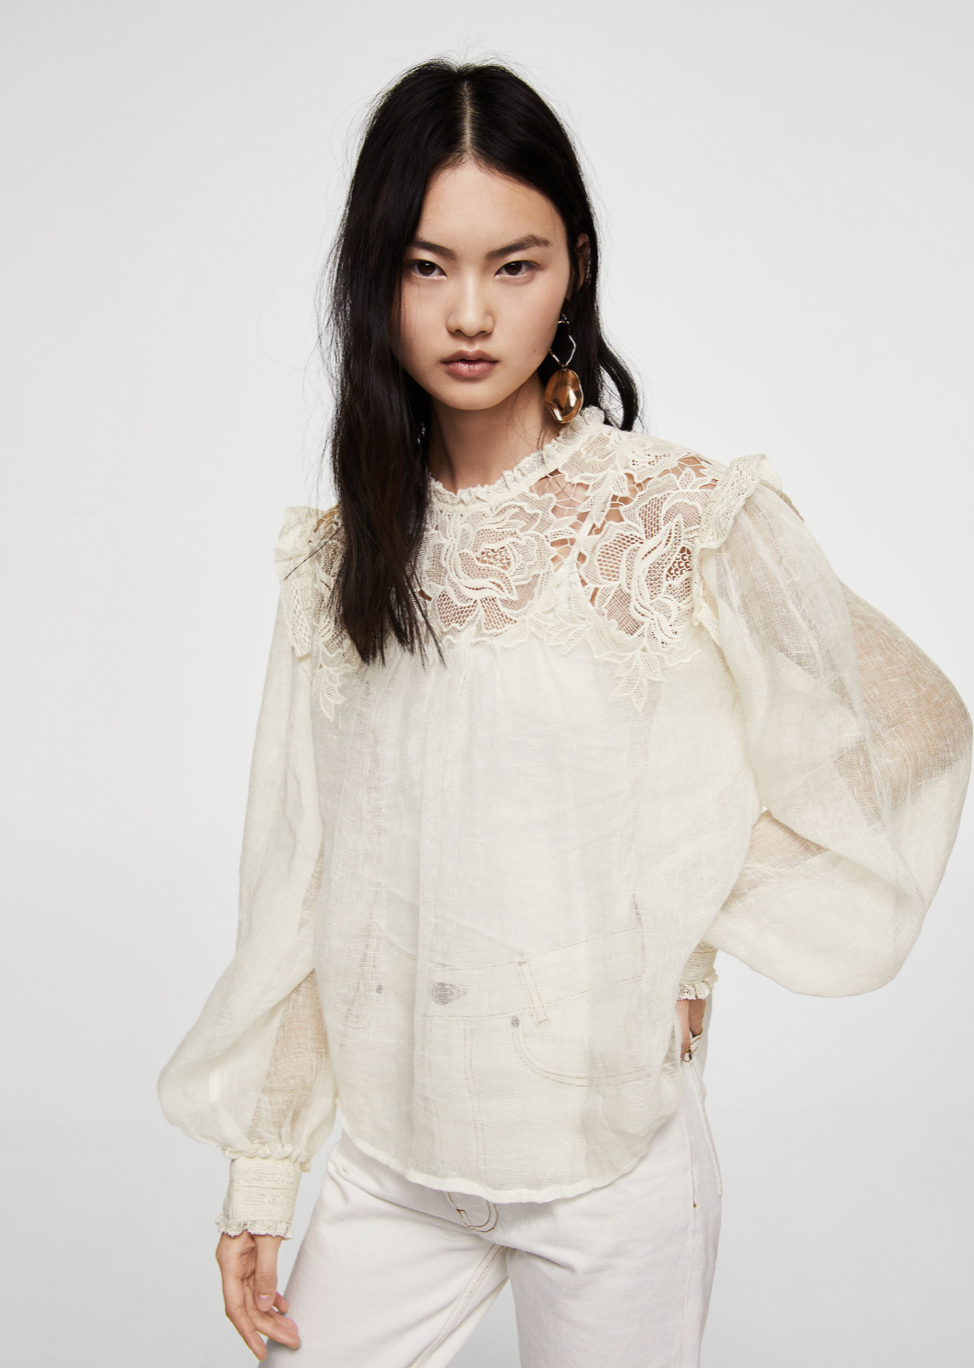 embroidered linen blouse –$99.99